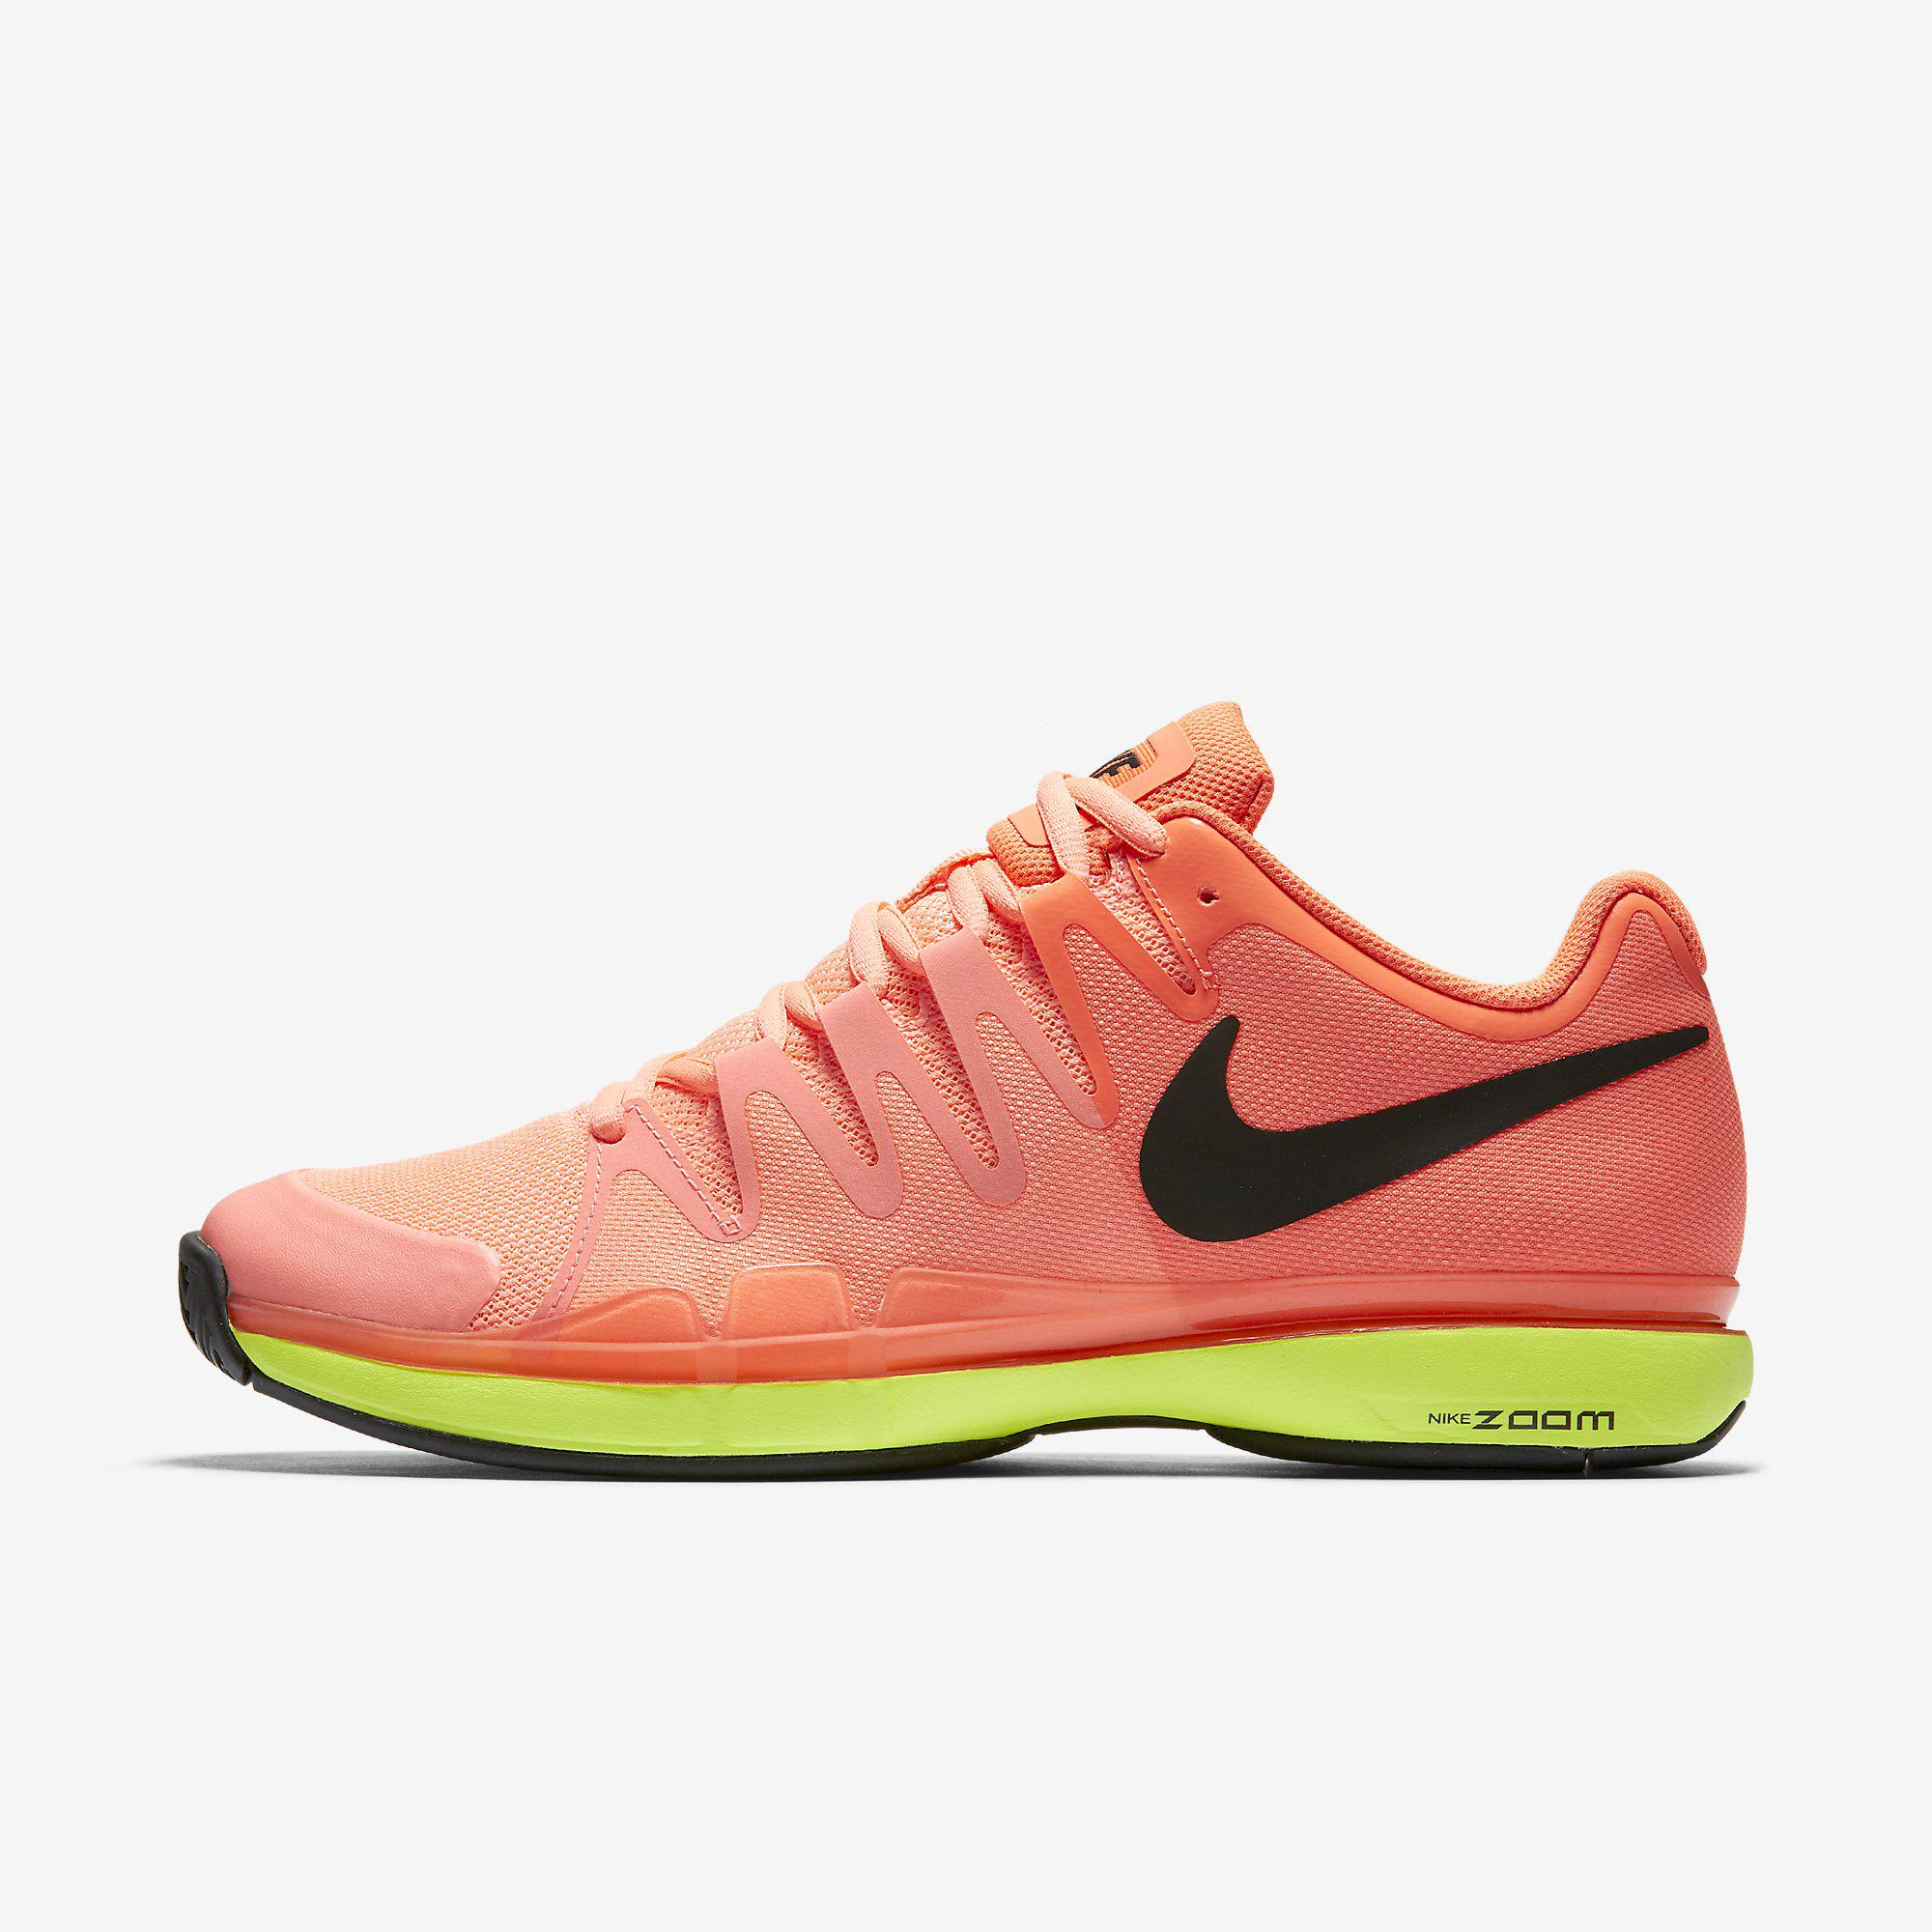 3109dc6b64b Nike Mens Zoom Vapor 9.5 Tour Tennis Shoes - Lava Glow Hyper Orange -  Tennisnuts.com